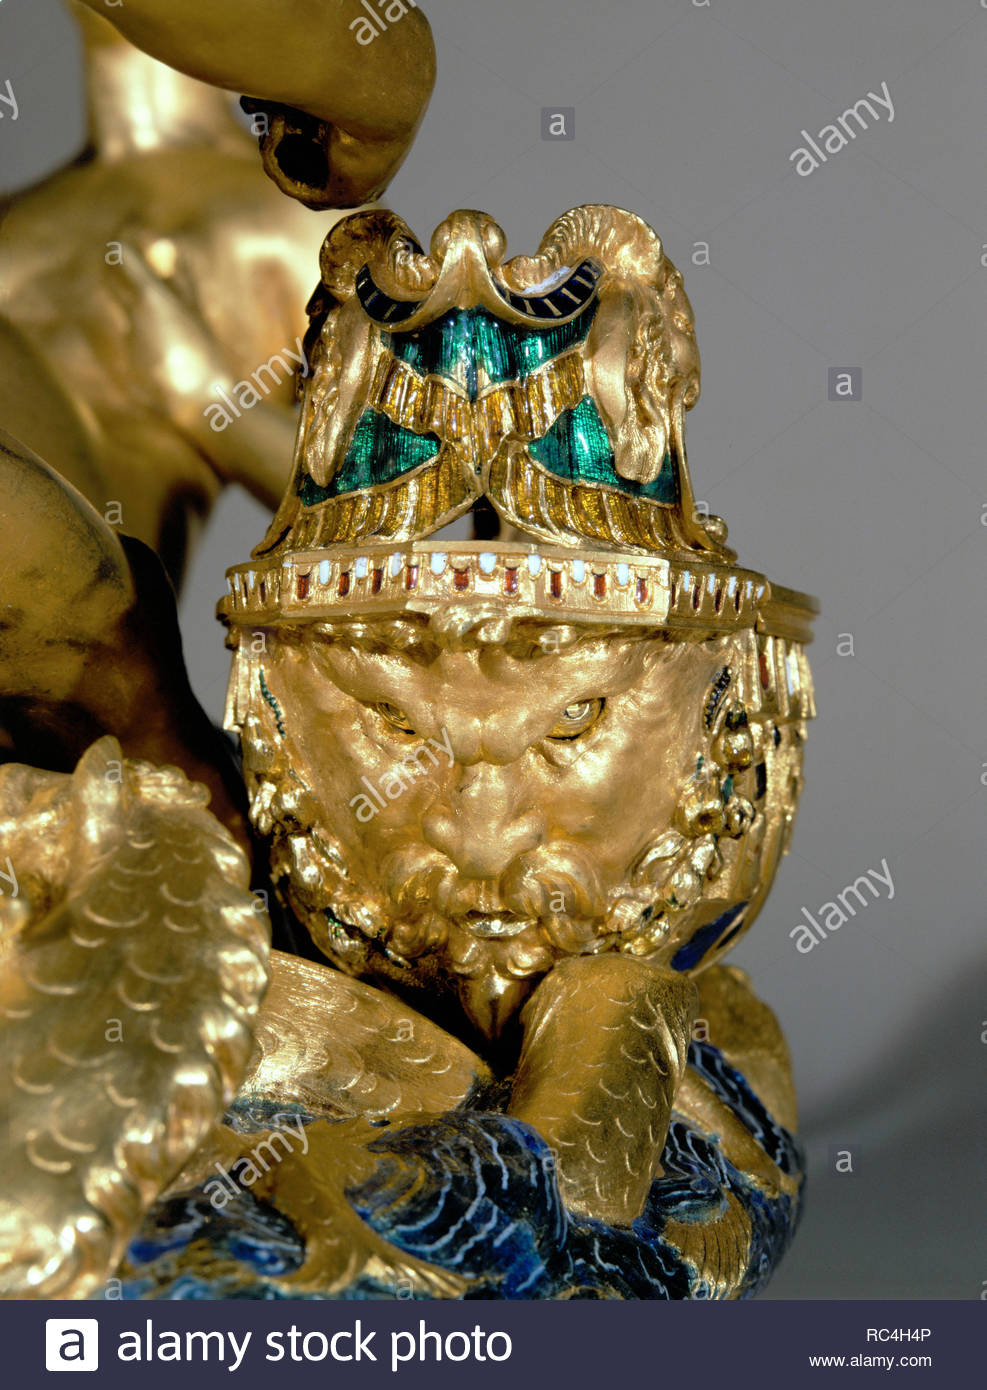 Ship stern in form of grim face. Detail of the saliera (saltcellar) Neptune (sea) and Tellus (earth). Gold, niello work, and ebony base (1540-1543) Height 26 cm Inv. 881. Author: CELLINI, BENVENUTO. Location: Kunsthistorisches Museum, Kunstkammer, Vienna, Austria. - Stock Image